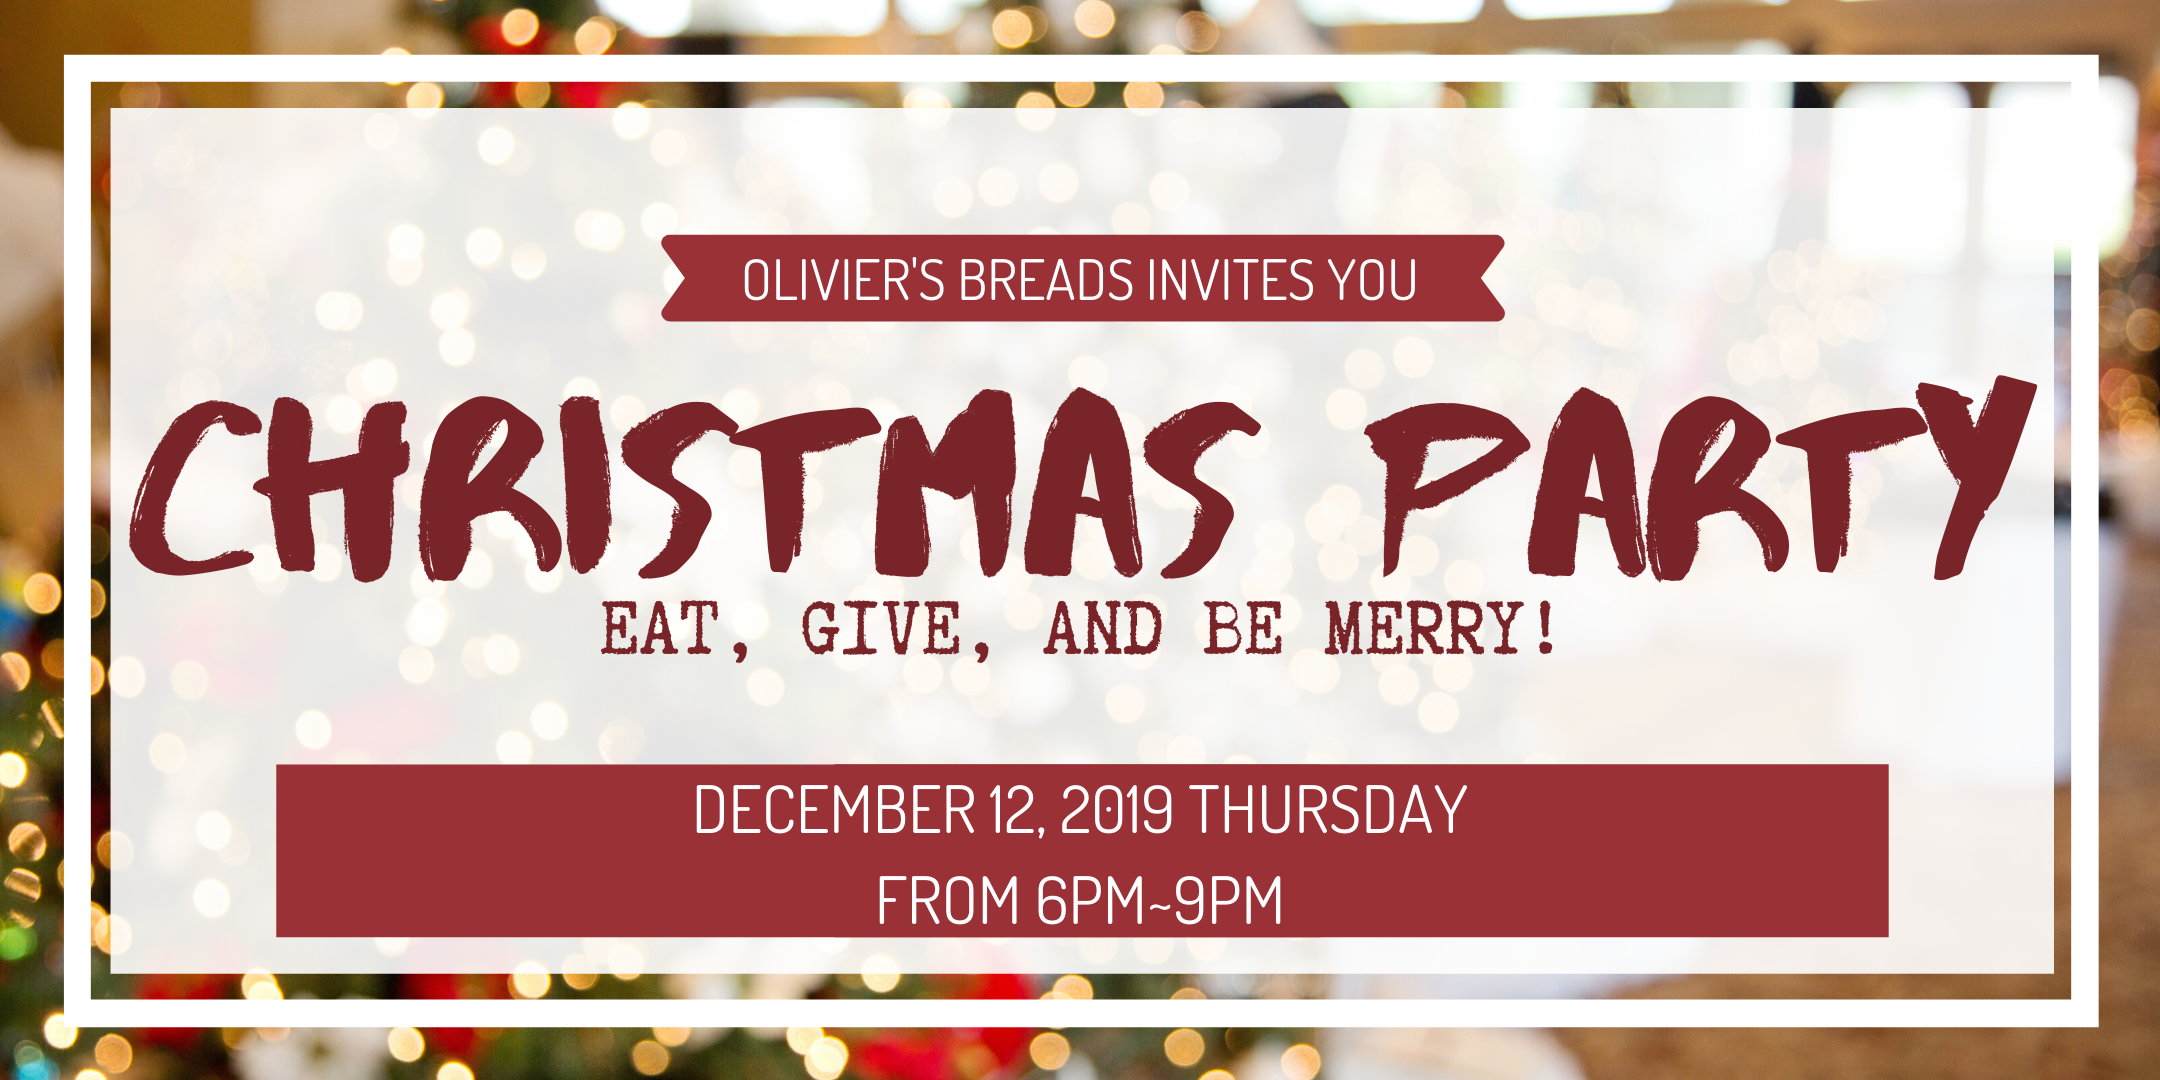 Christmas Party 2019 at Olivier's Breads